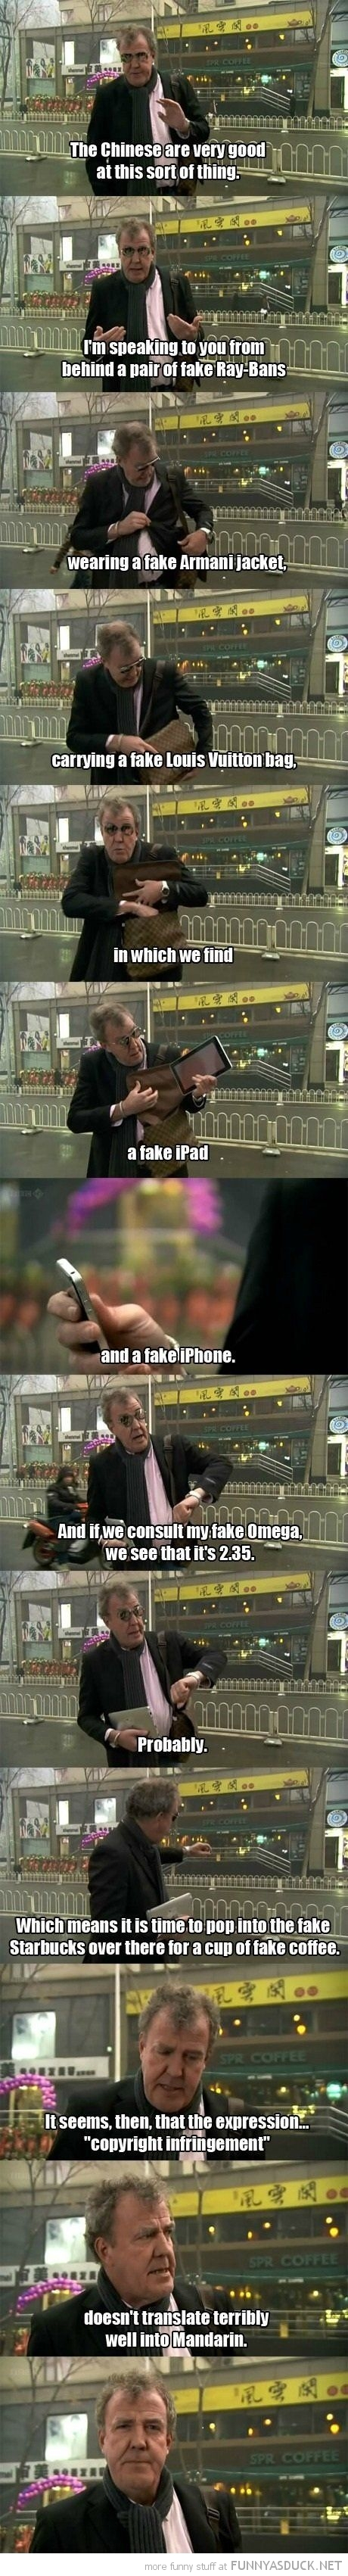 jeremy clarkson top gear chinese fake copyright infringement mandarin tv funny pics pictures pic picture image photo images photos lol